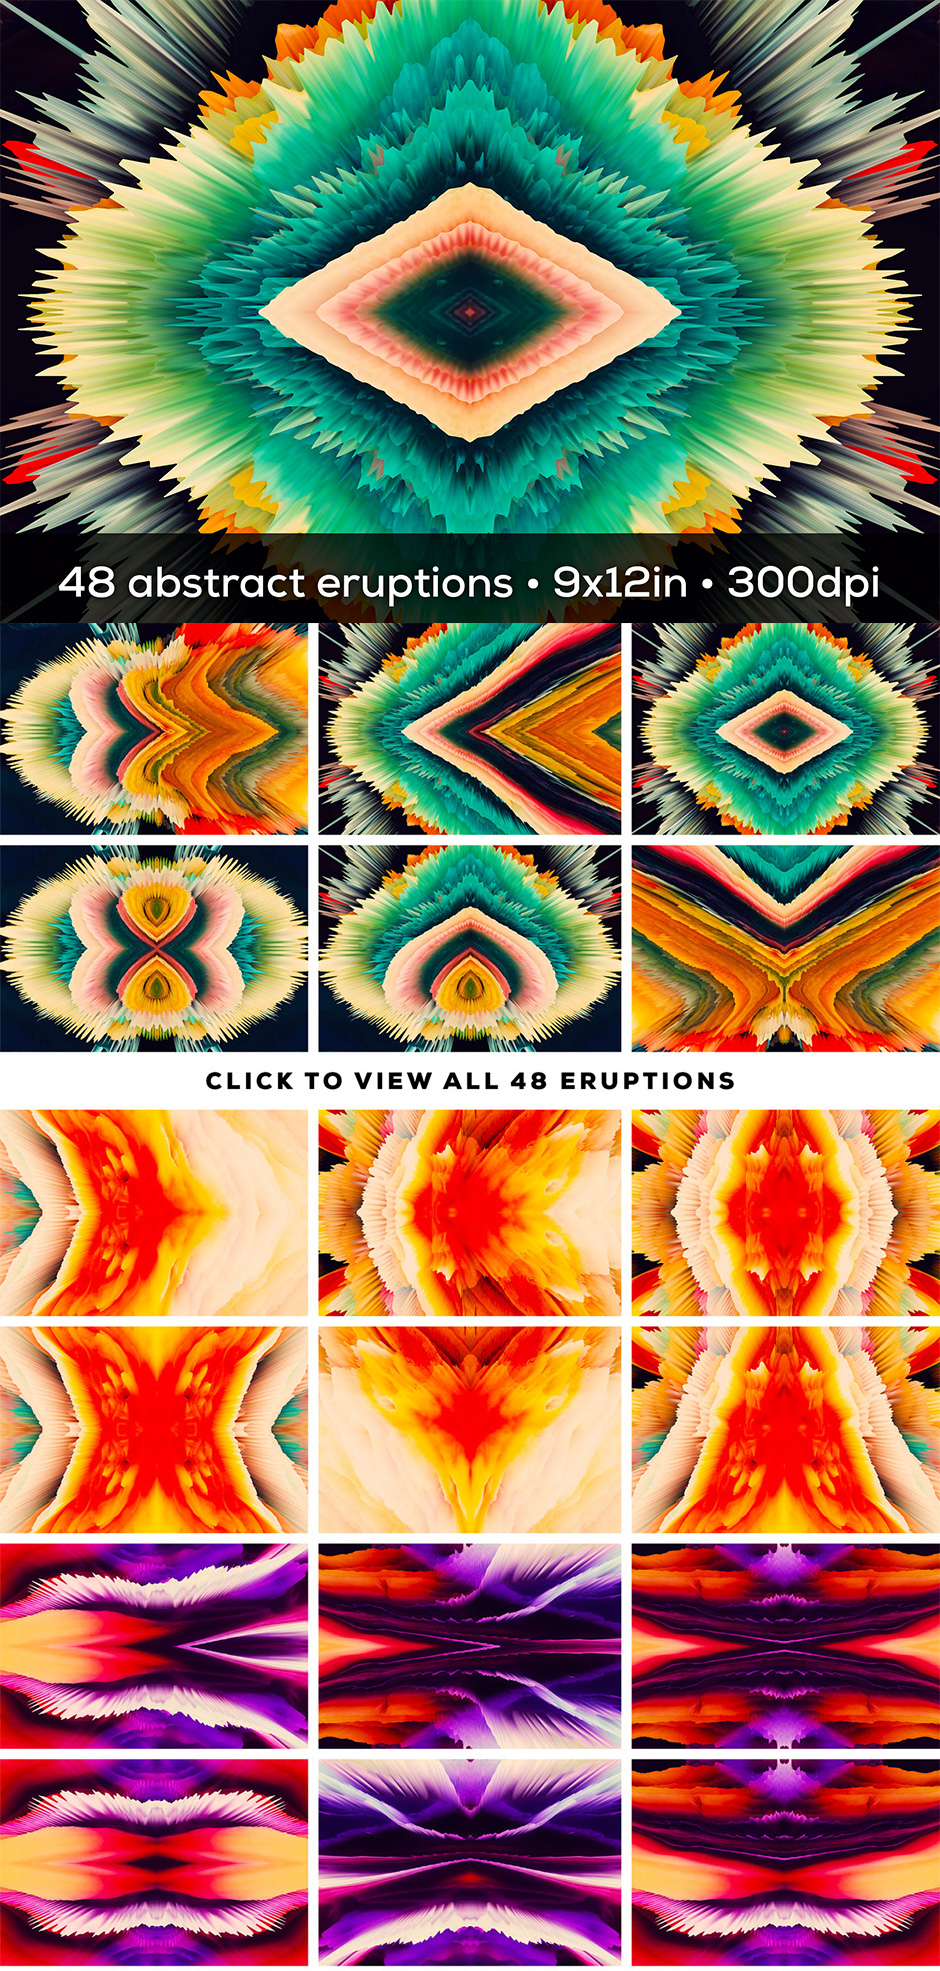 Eruption: 48 Abstract Explosions